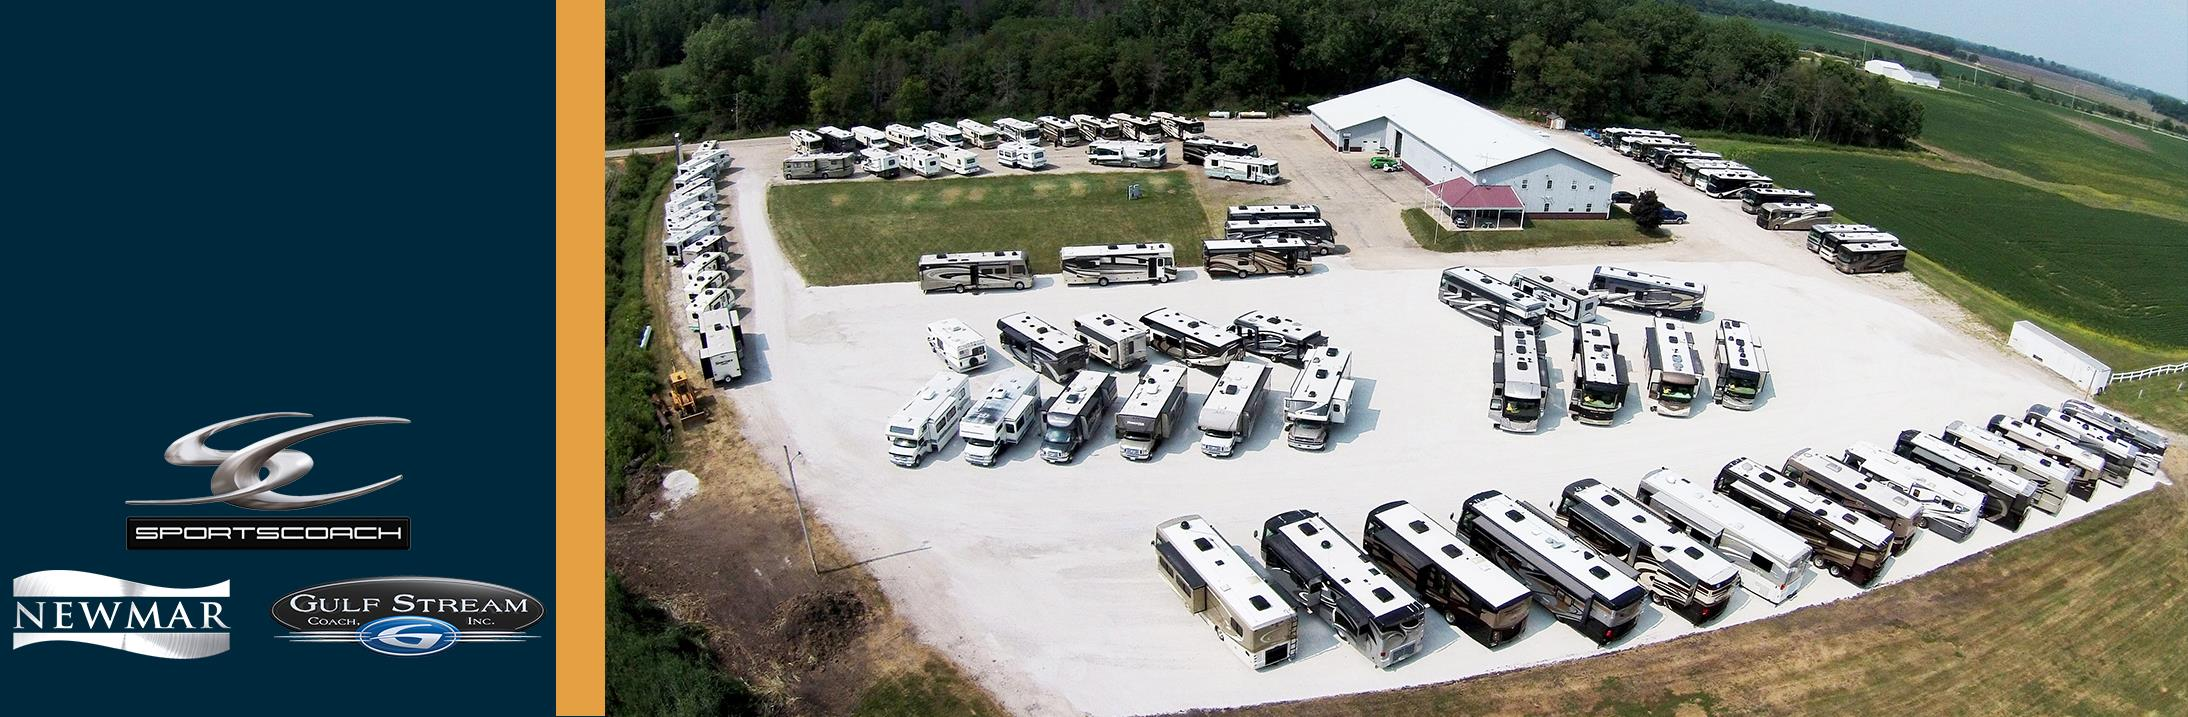 Active and Sold Inventory of RV's and campers at Shabbona Creek RV